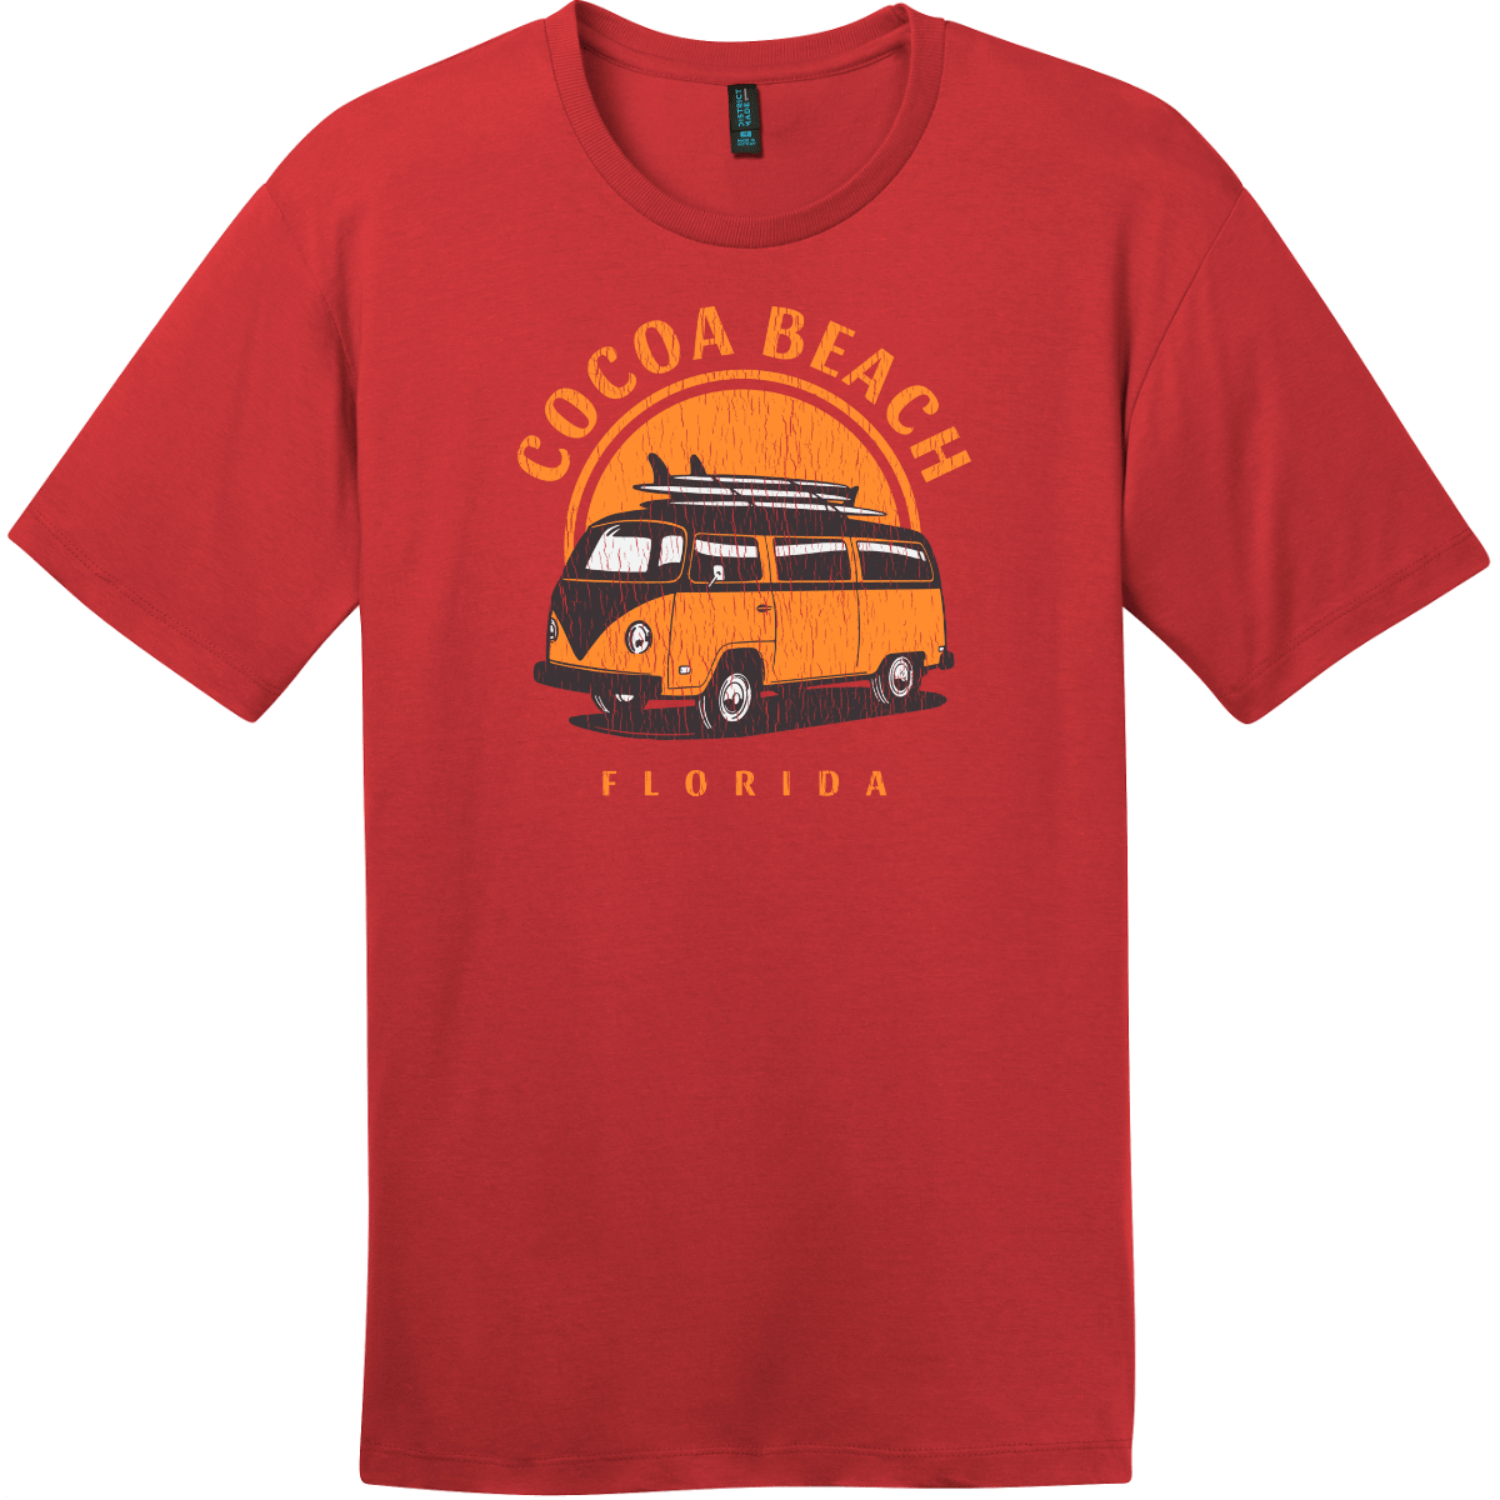 Cocoa Beach Florida Surf Van T-Shirt Classic Red District Perfect Weight Tee DT104